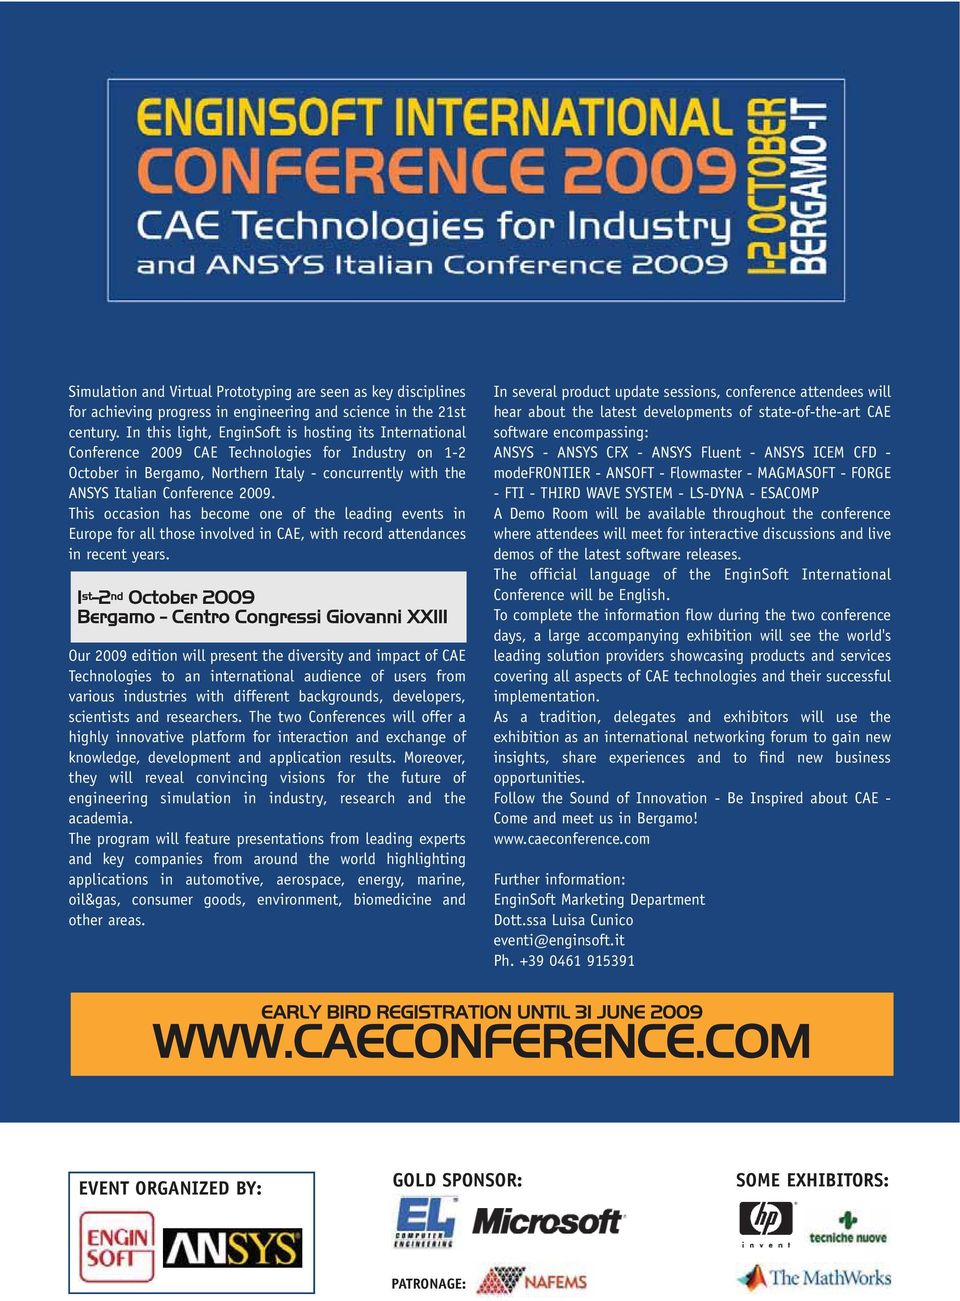 This occasion has become one of the leading events in Europe for all those involved in CAE, with record attendances in recent years.